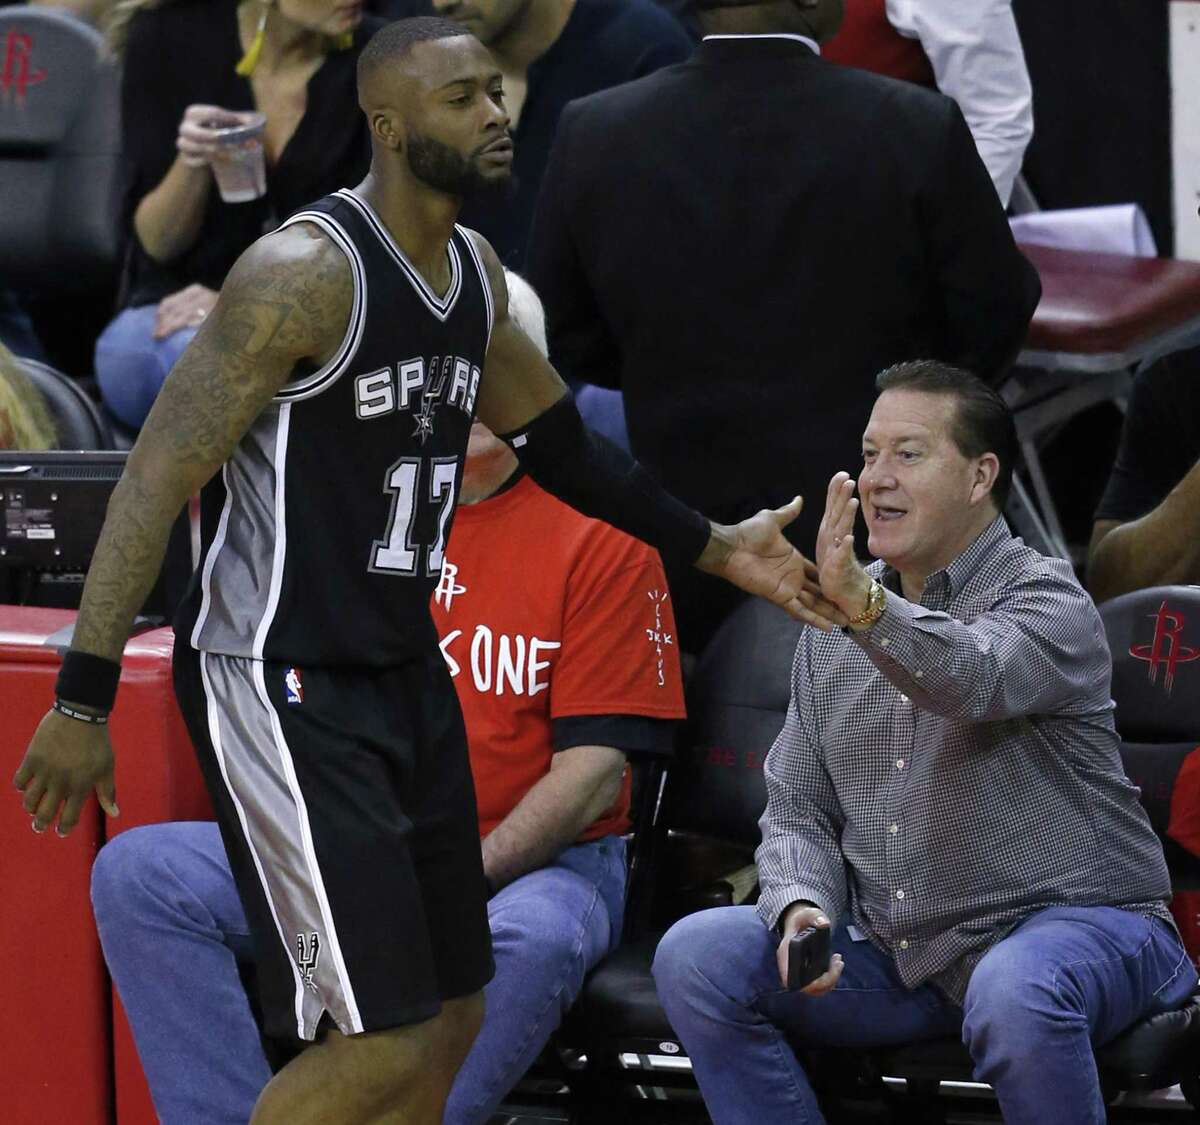 Spurs' Jonathon Simmons greets fans as he walks to the bench during a timeout in second half action of Game 6 against the Rockets in the Western Conference semifinals on May 11, 2017 at the Toyota Center in Houston.